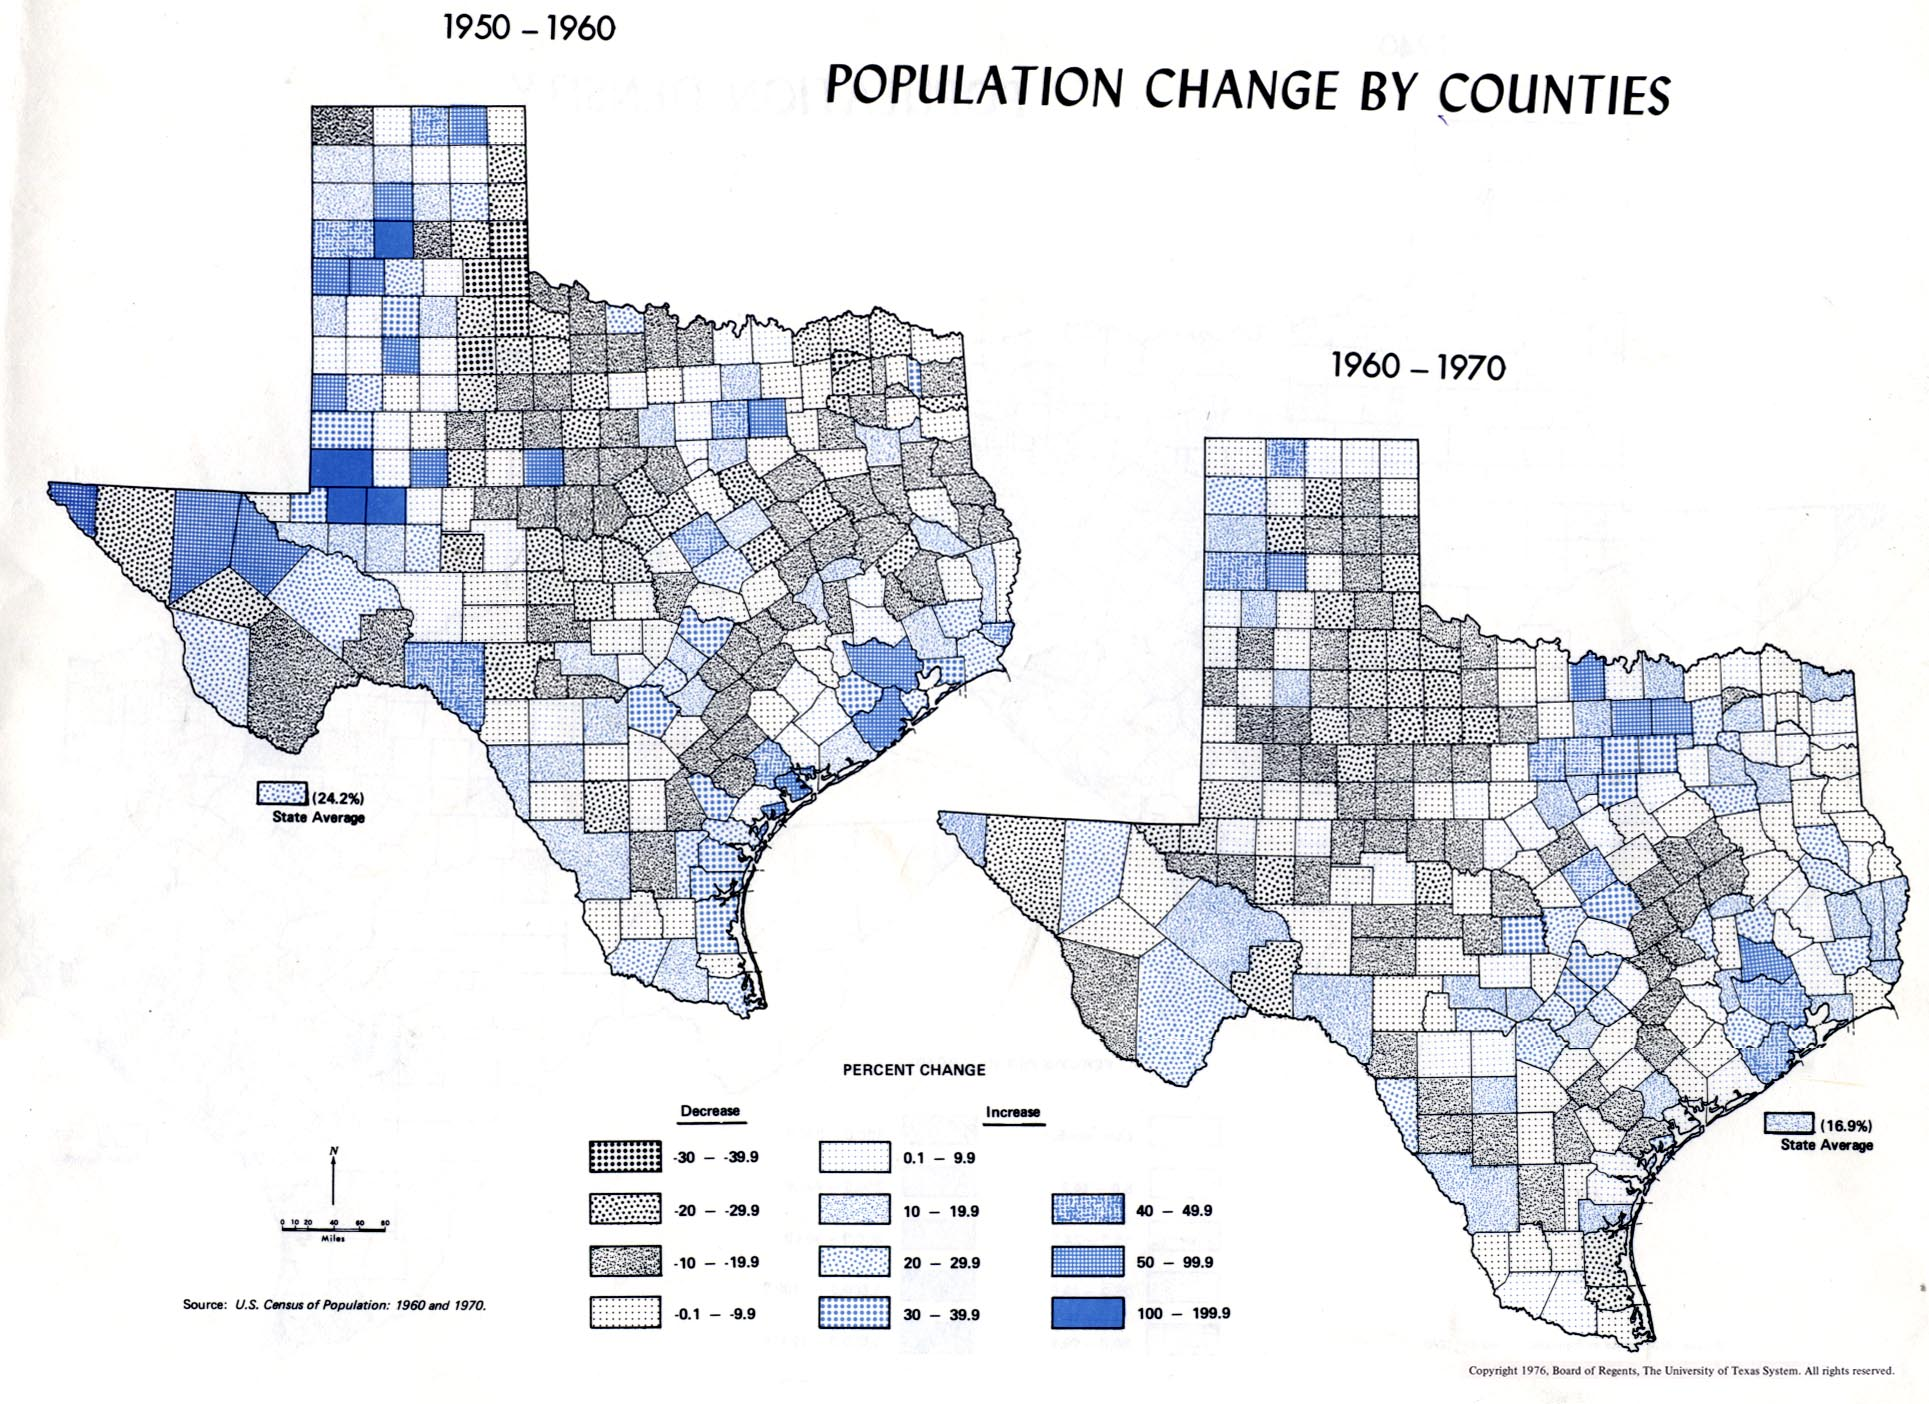 60 Population By Counties 1950 1960 1960 1970 2 Maps